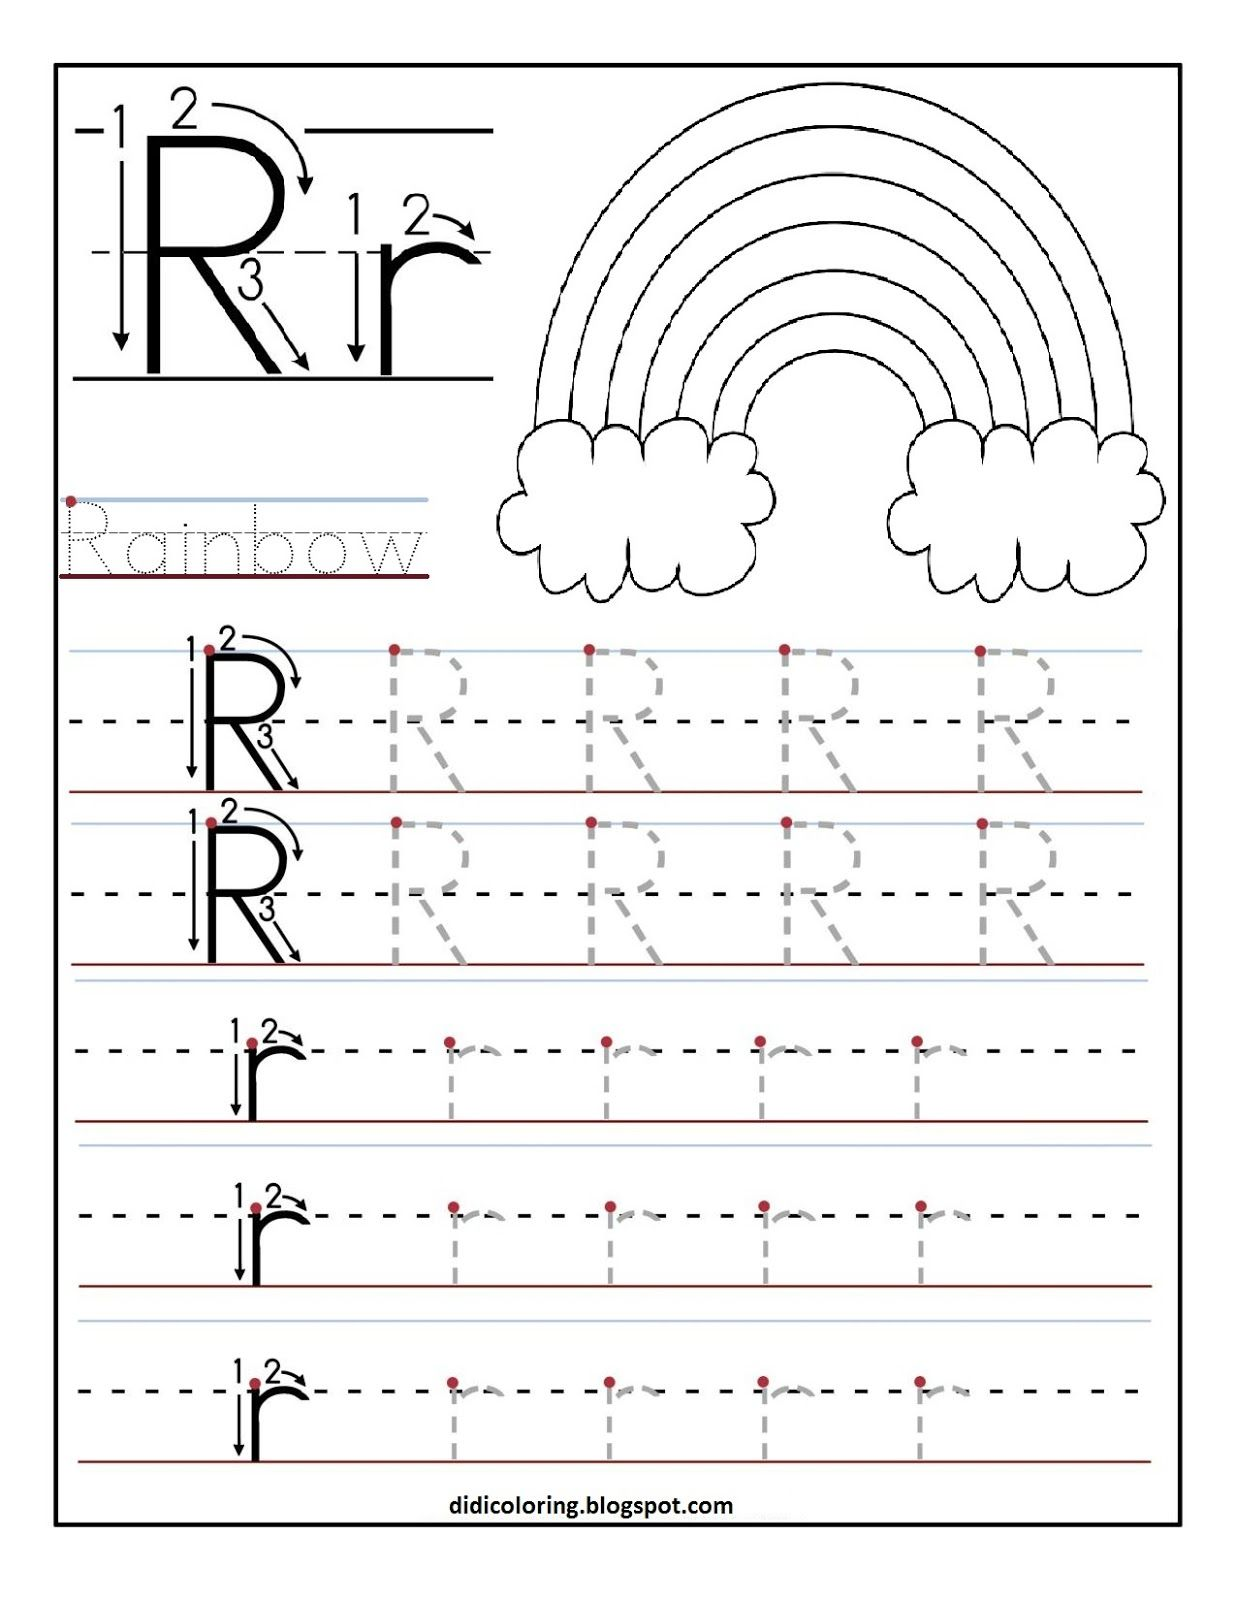 Printable Letter R Tracing Worksheets For Kids 1 236 1 600 Pixels